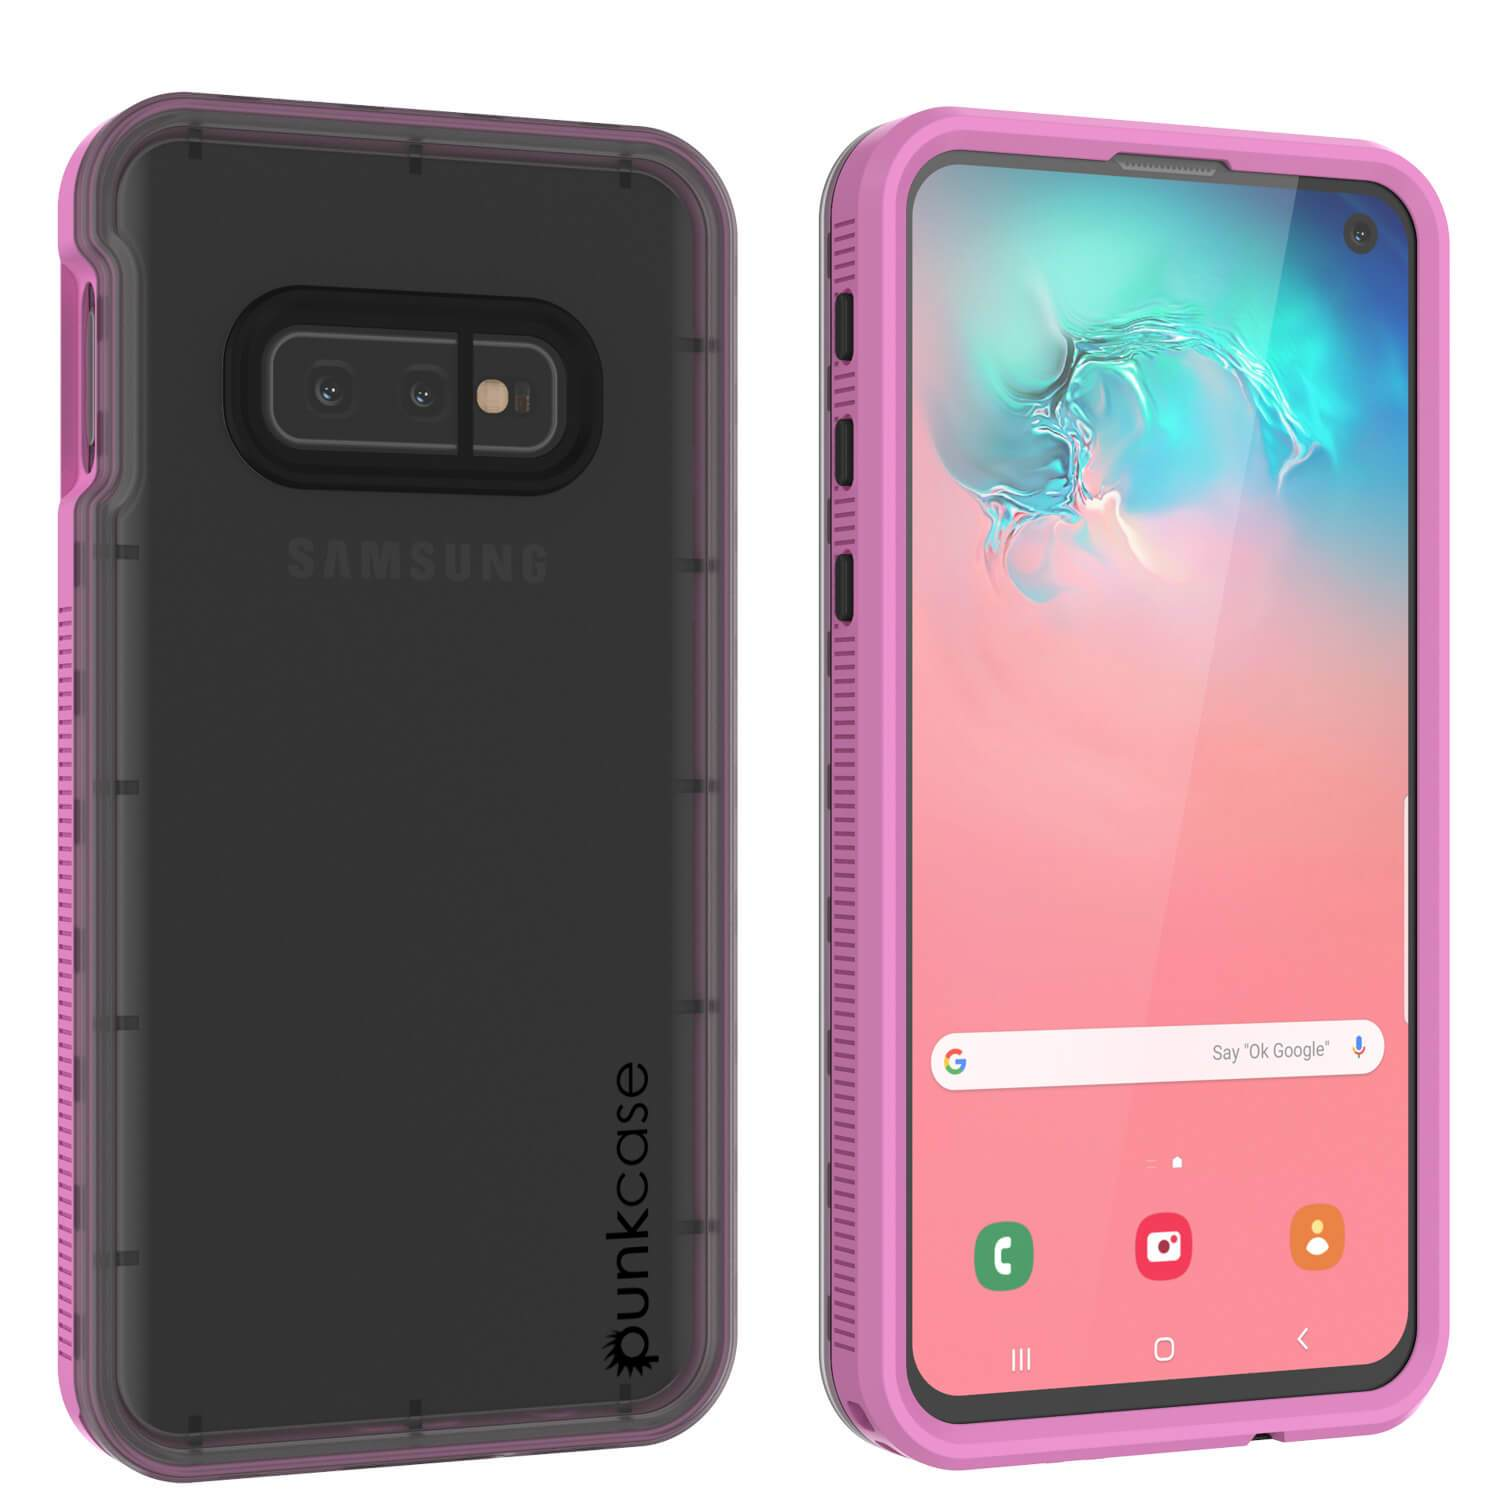 Galaxy S10e Waterproof Case PunkCase StudStar Pink Thin 6.6ft Underwater IP68 Shock/Snow Proof